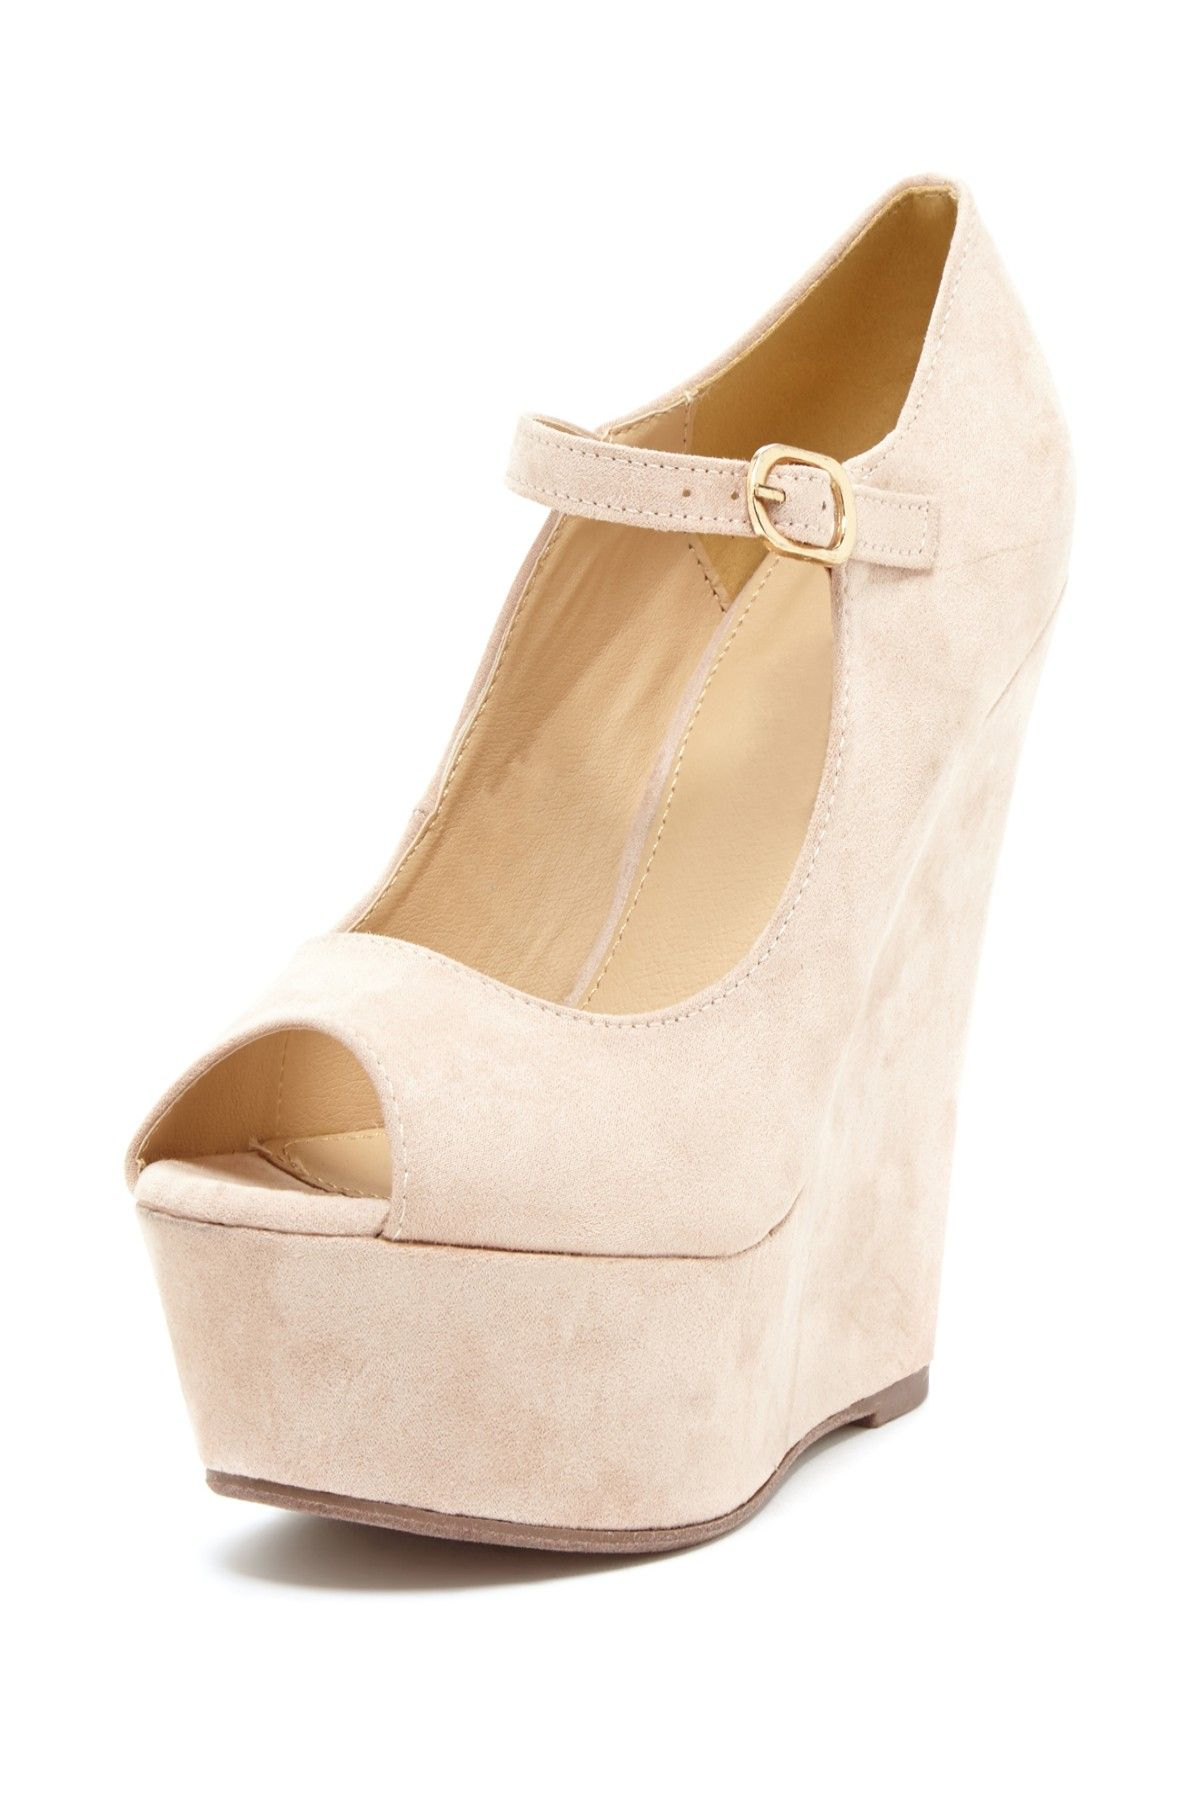 DbDk Fashion by Elegant Footwear Klenny Mary Jane Platform Wedge//